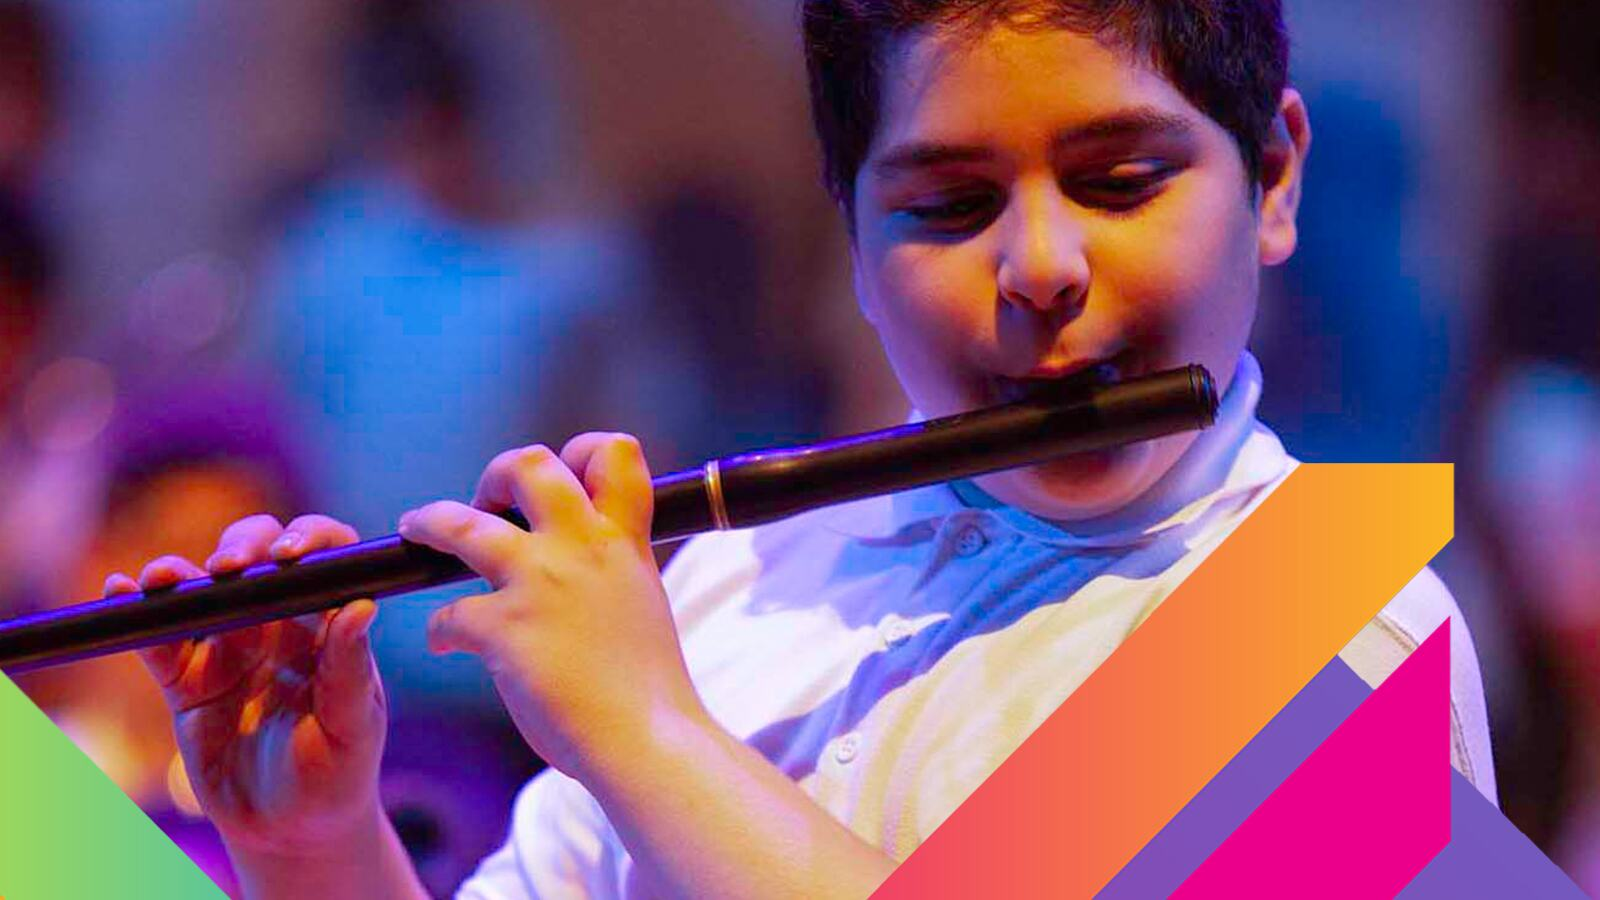 Young musician performing